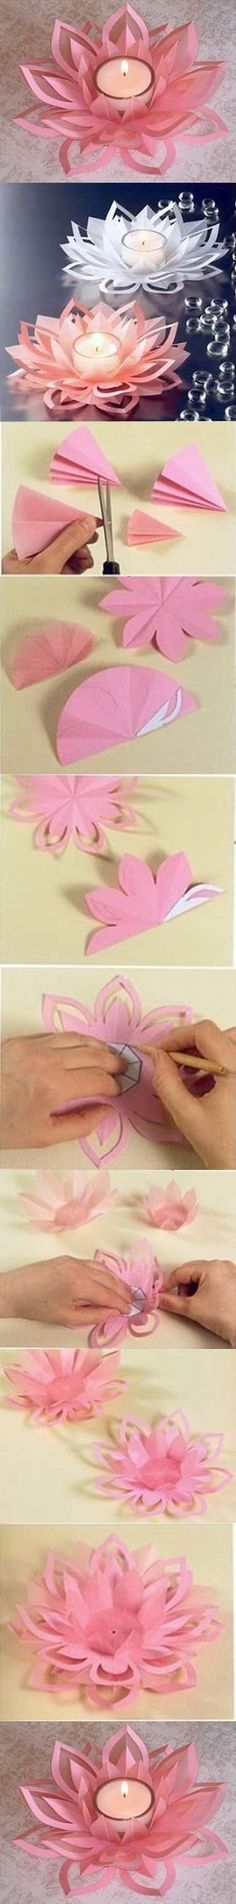 Beautiful DIY Candle Holders – Great Ideas & Tutorials for Special Occasions 2017 DIY Paper Lotus Candle Holders. More The post Beautiful DIY Candle Holders – Great Ideas & Tutorials for Special Occasions 2017 appeared first on Welcome! Flower Crafts, Diy Flowers, Paper Flowers, Lotus Flowers, Wedding Flowers, Origami Flowers, Peony Flower, Diy Paper, Paper Art